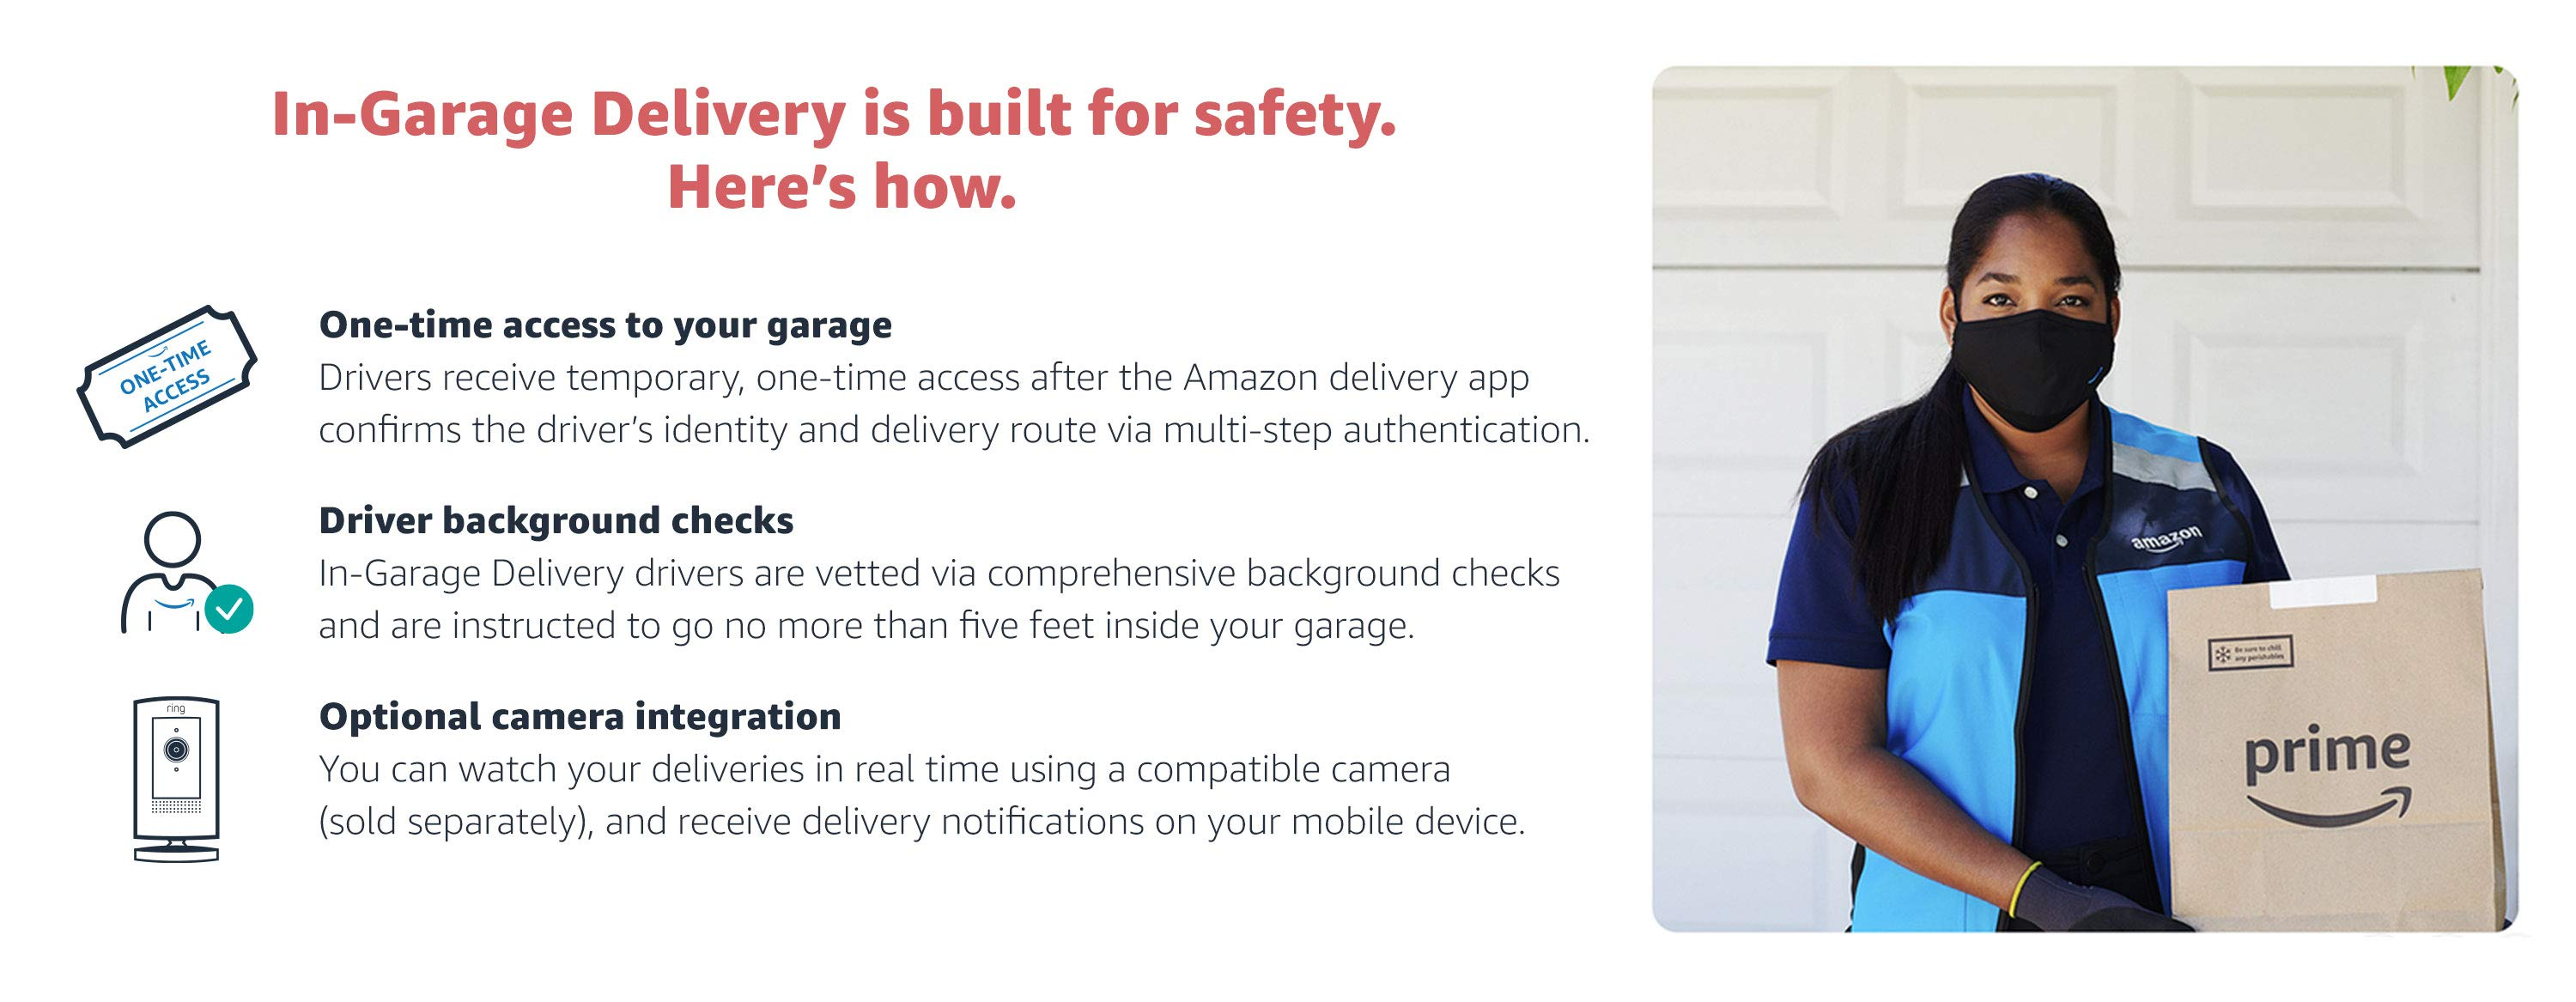 In-Garage Delivery is built for safety. One-time access to your garage. Driver background check. Optional camera integration.